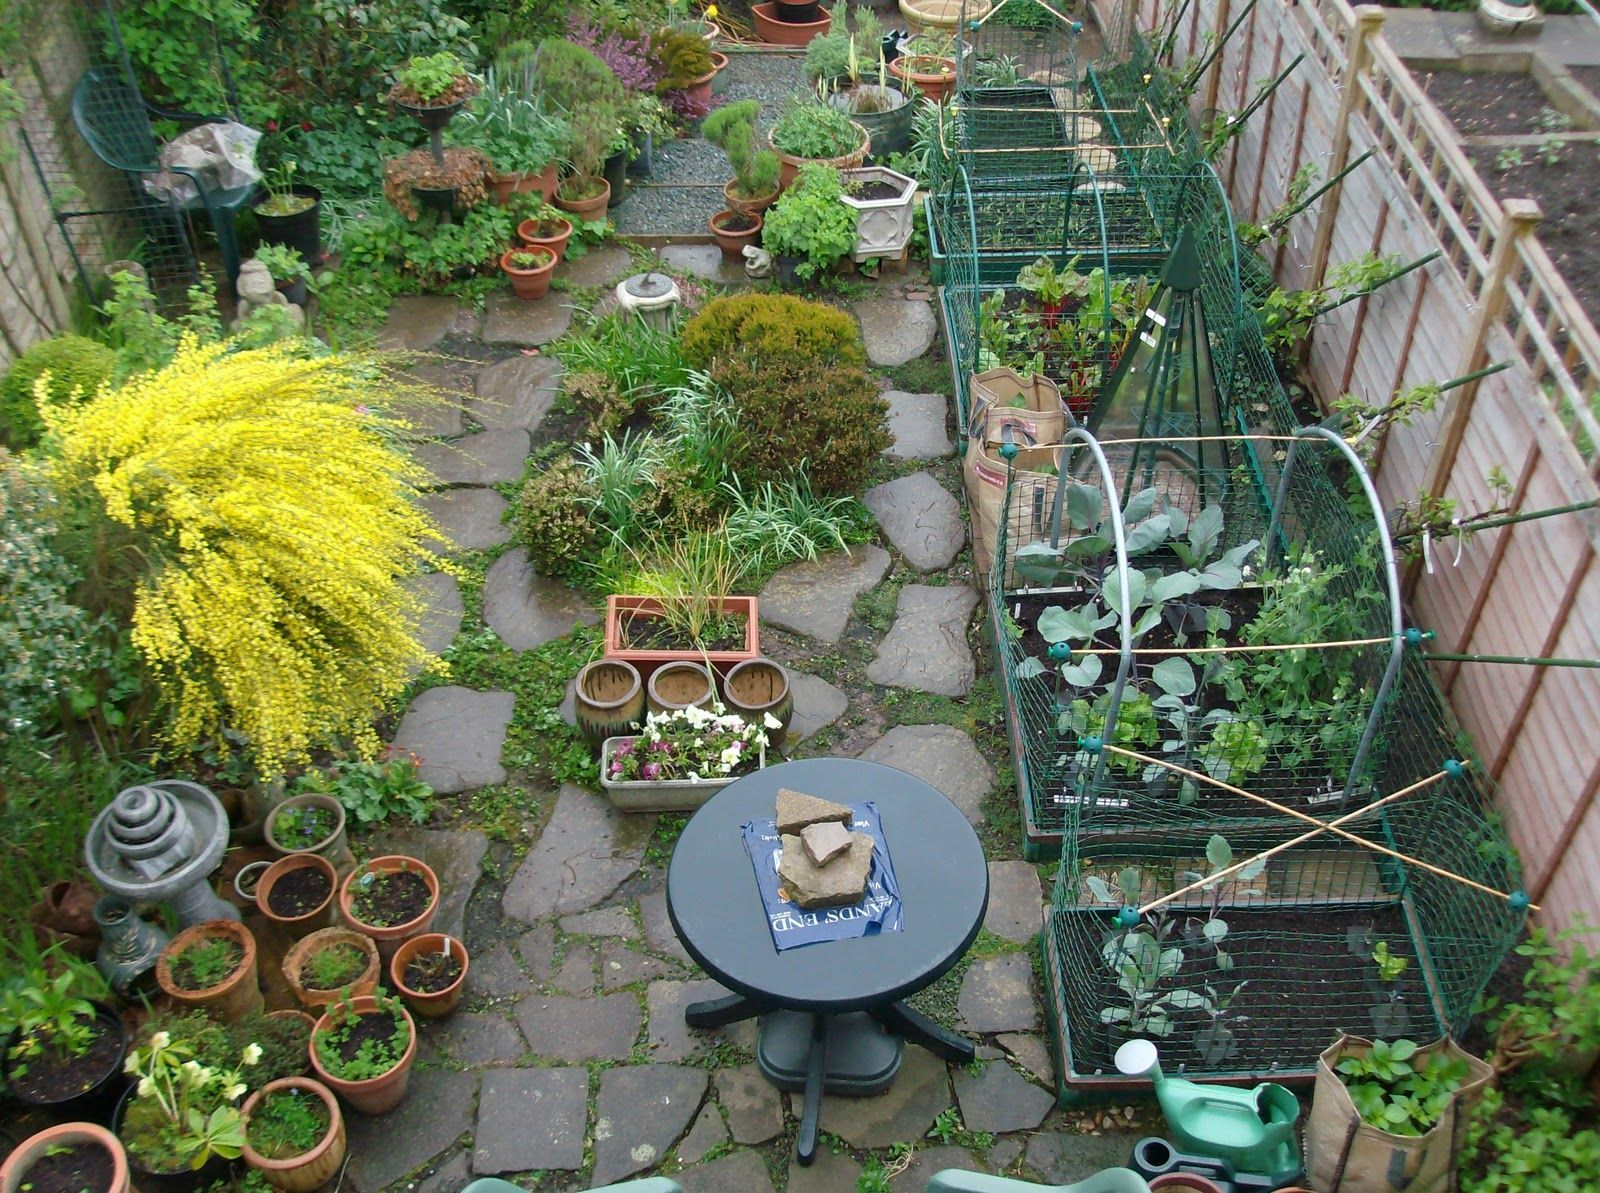 Good Lives Project: Growing your own in small spaces - a crop of new books!